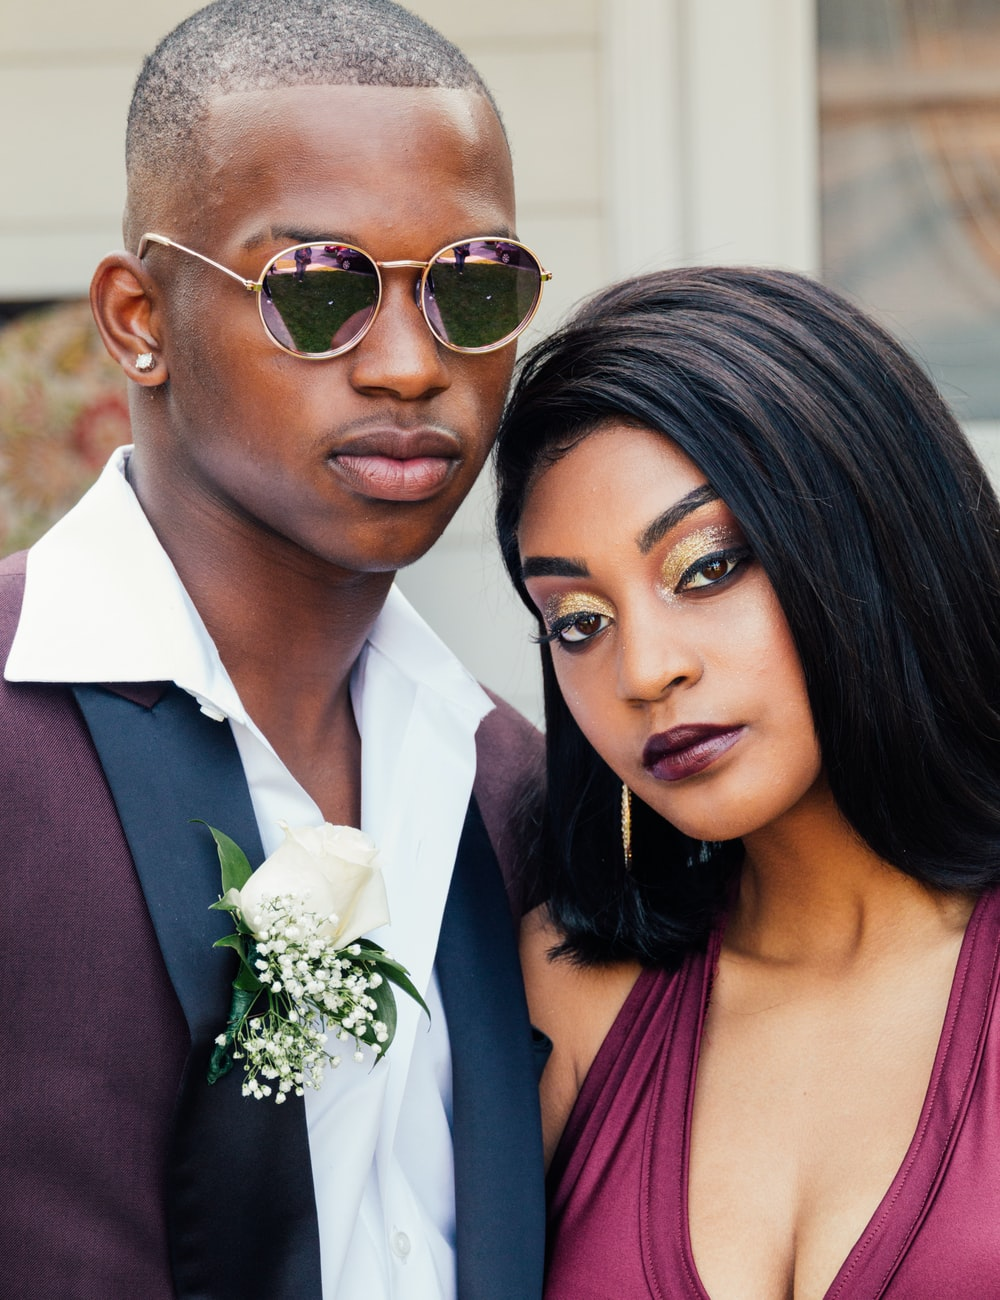 man and woman wearing formal suits